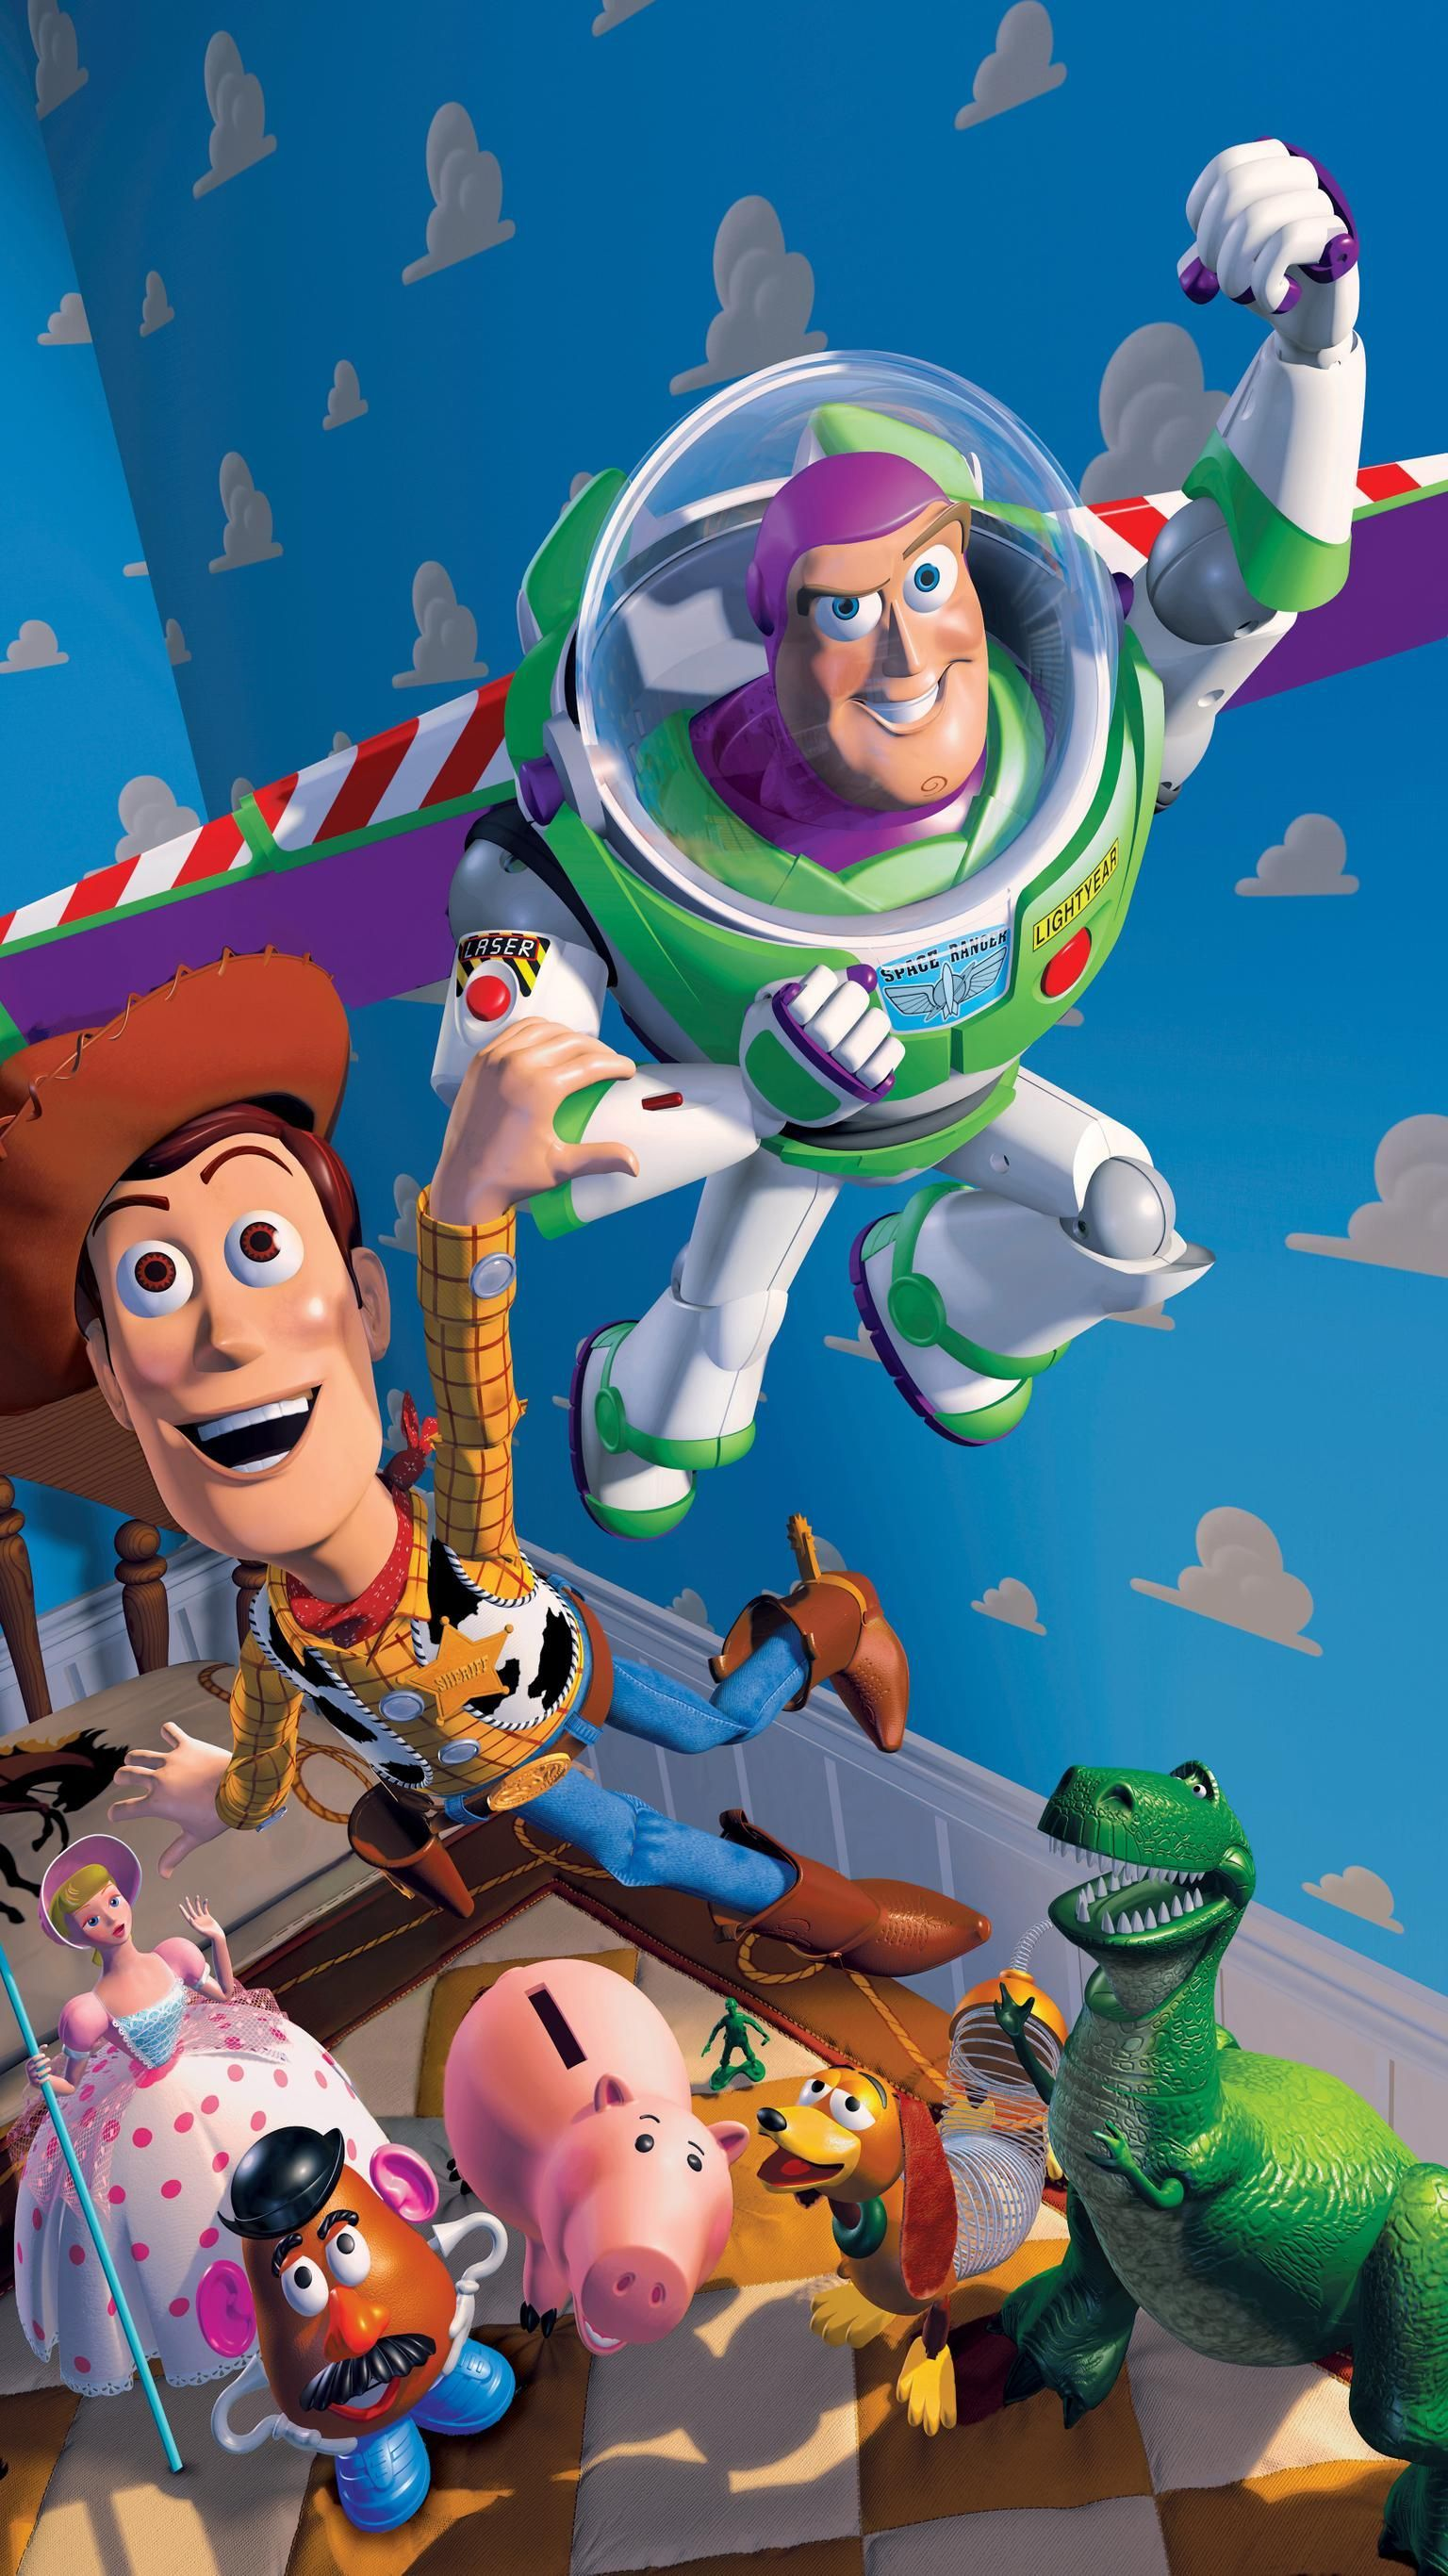 Disney Toy Story Wallpapers Top Free Disney Toy Story